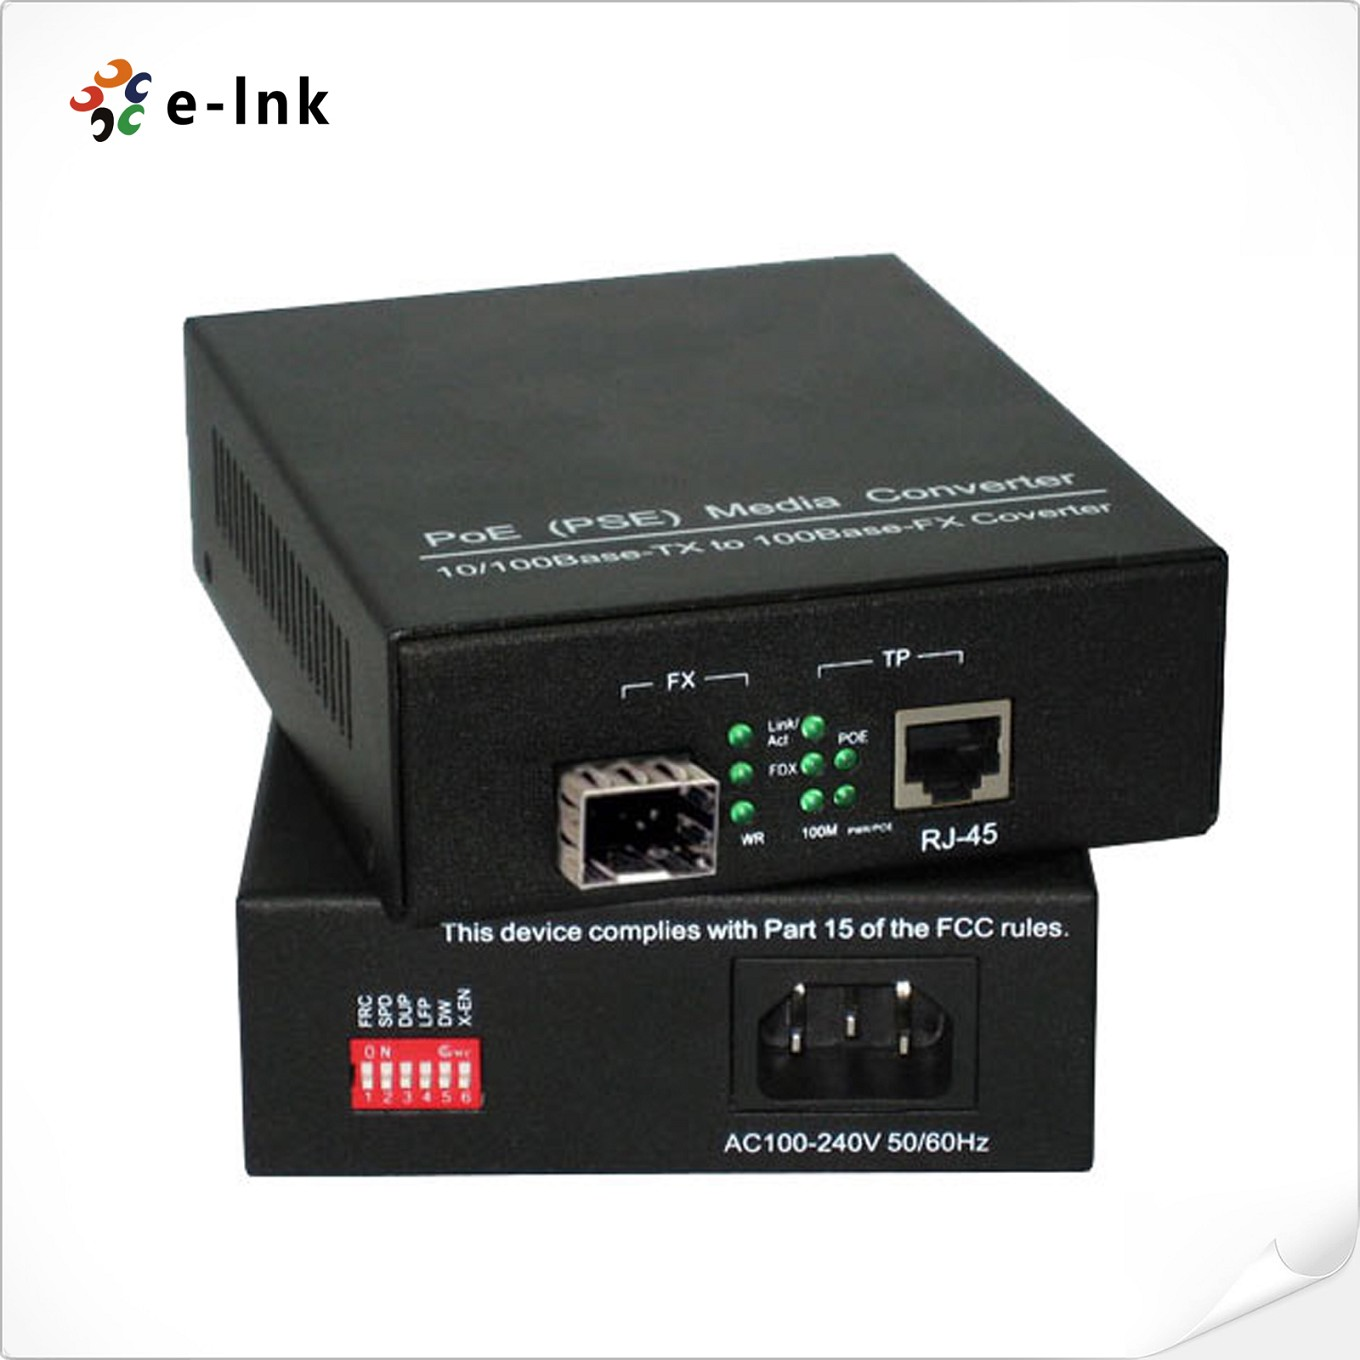 PoE(PSE) 10/100Base-TX to 100Base-FX Media Converter with built-in power supply